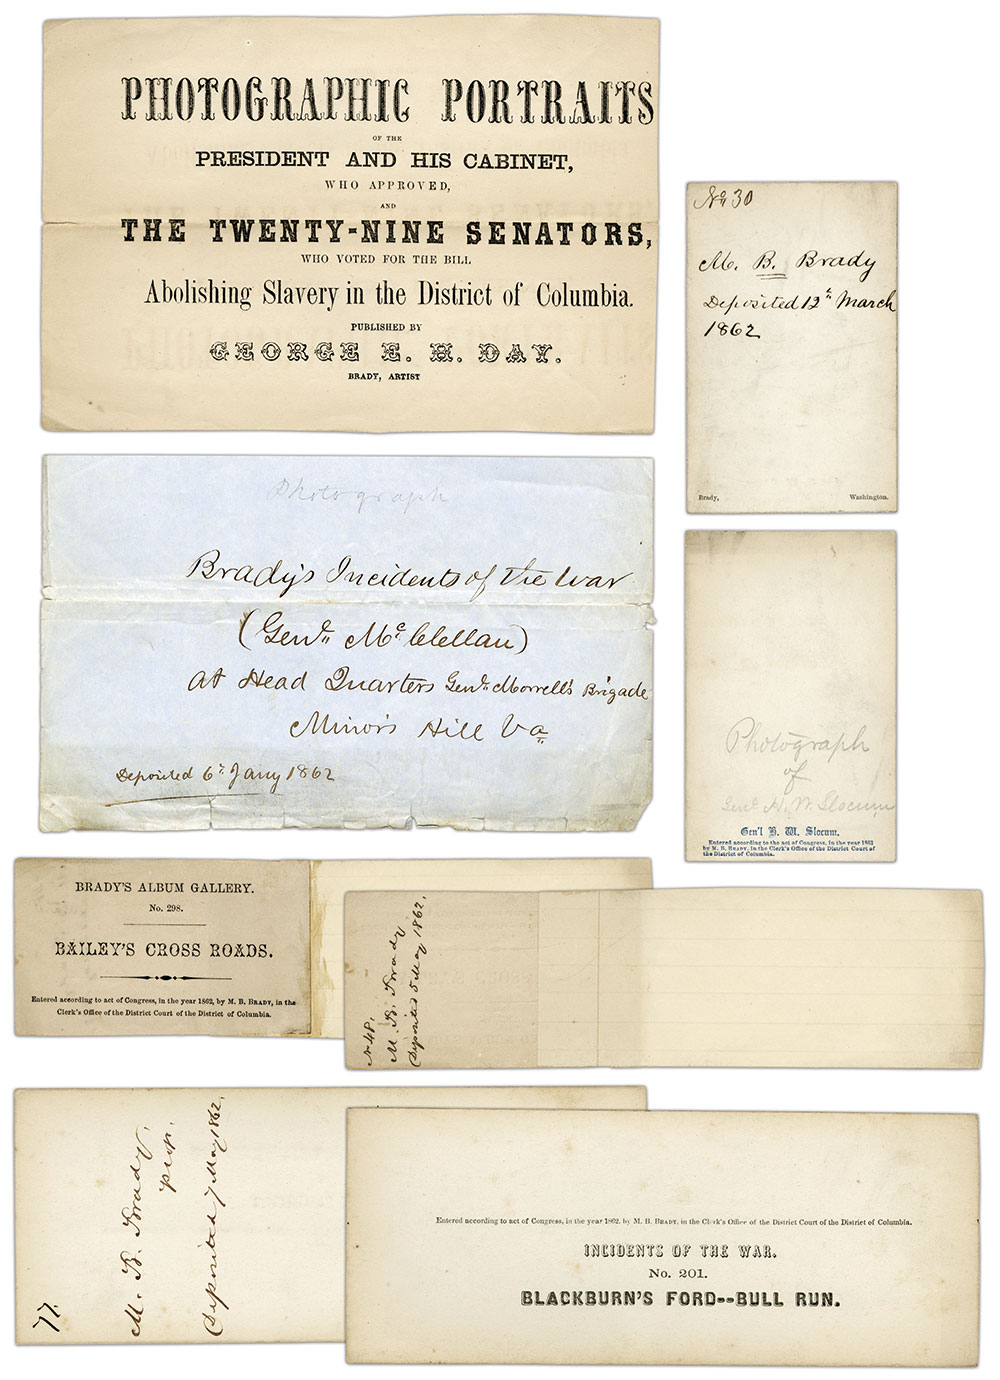 Unique Title Pages: Without having an official government form to submit copyrights, photographers used a variety of papers—from photographic mounts to envelopes—for title pages. These examples were found in the files of the Library of Congress. All relate to Mathew Brady.